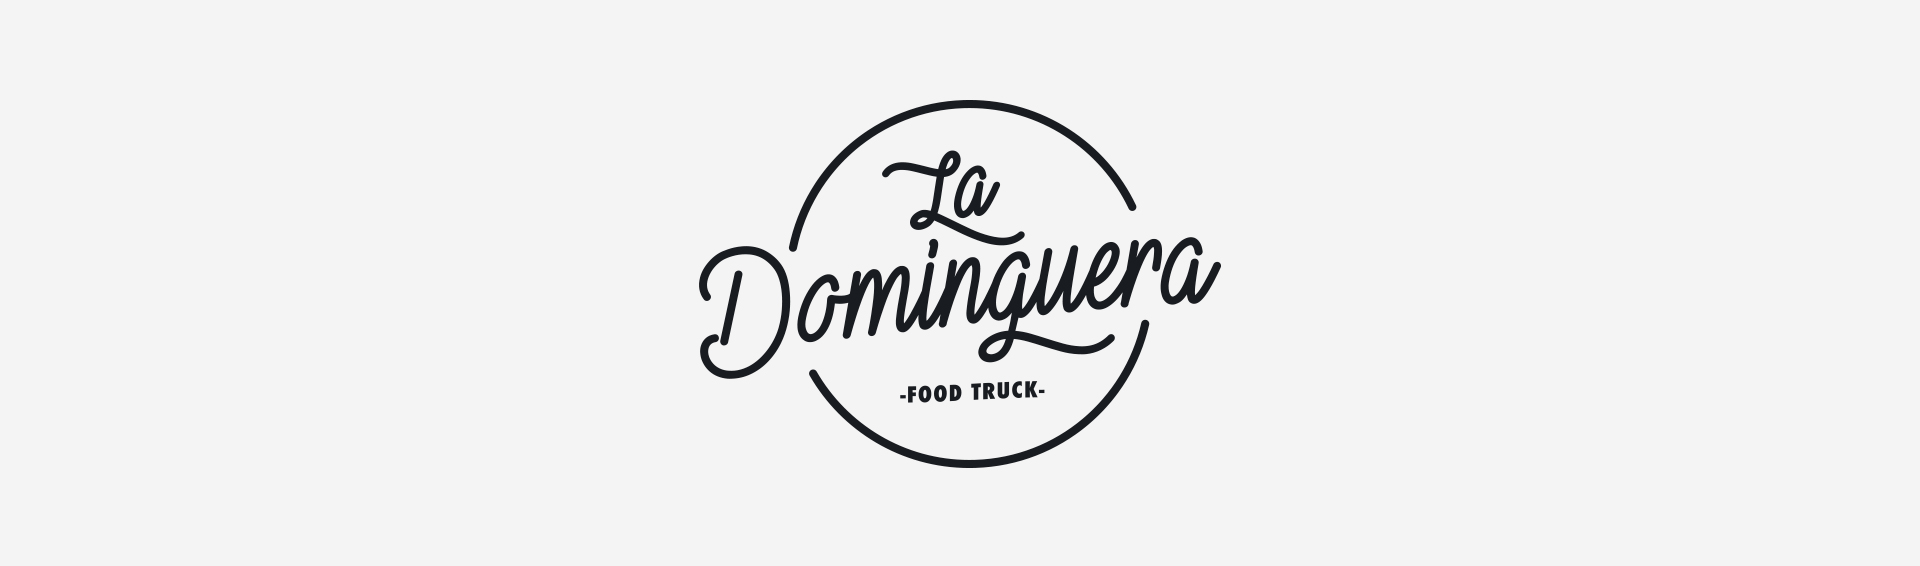 ladominguera_logotype_identity_corporate